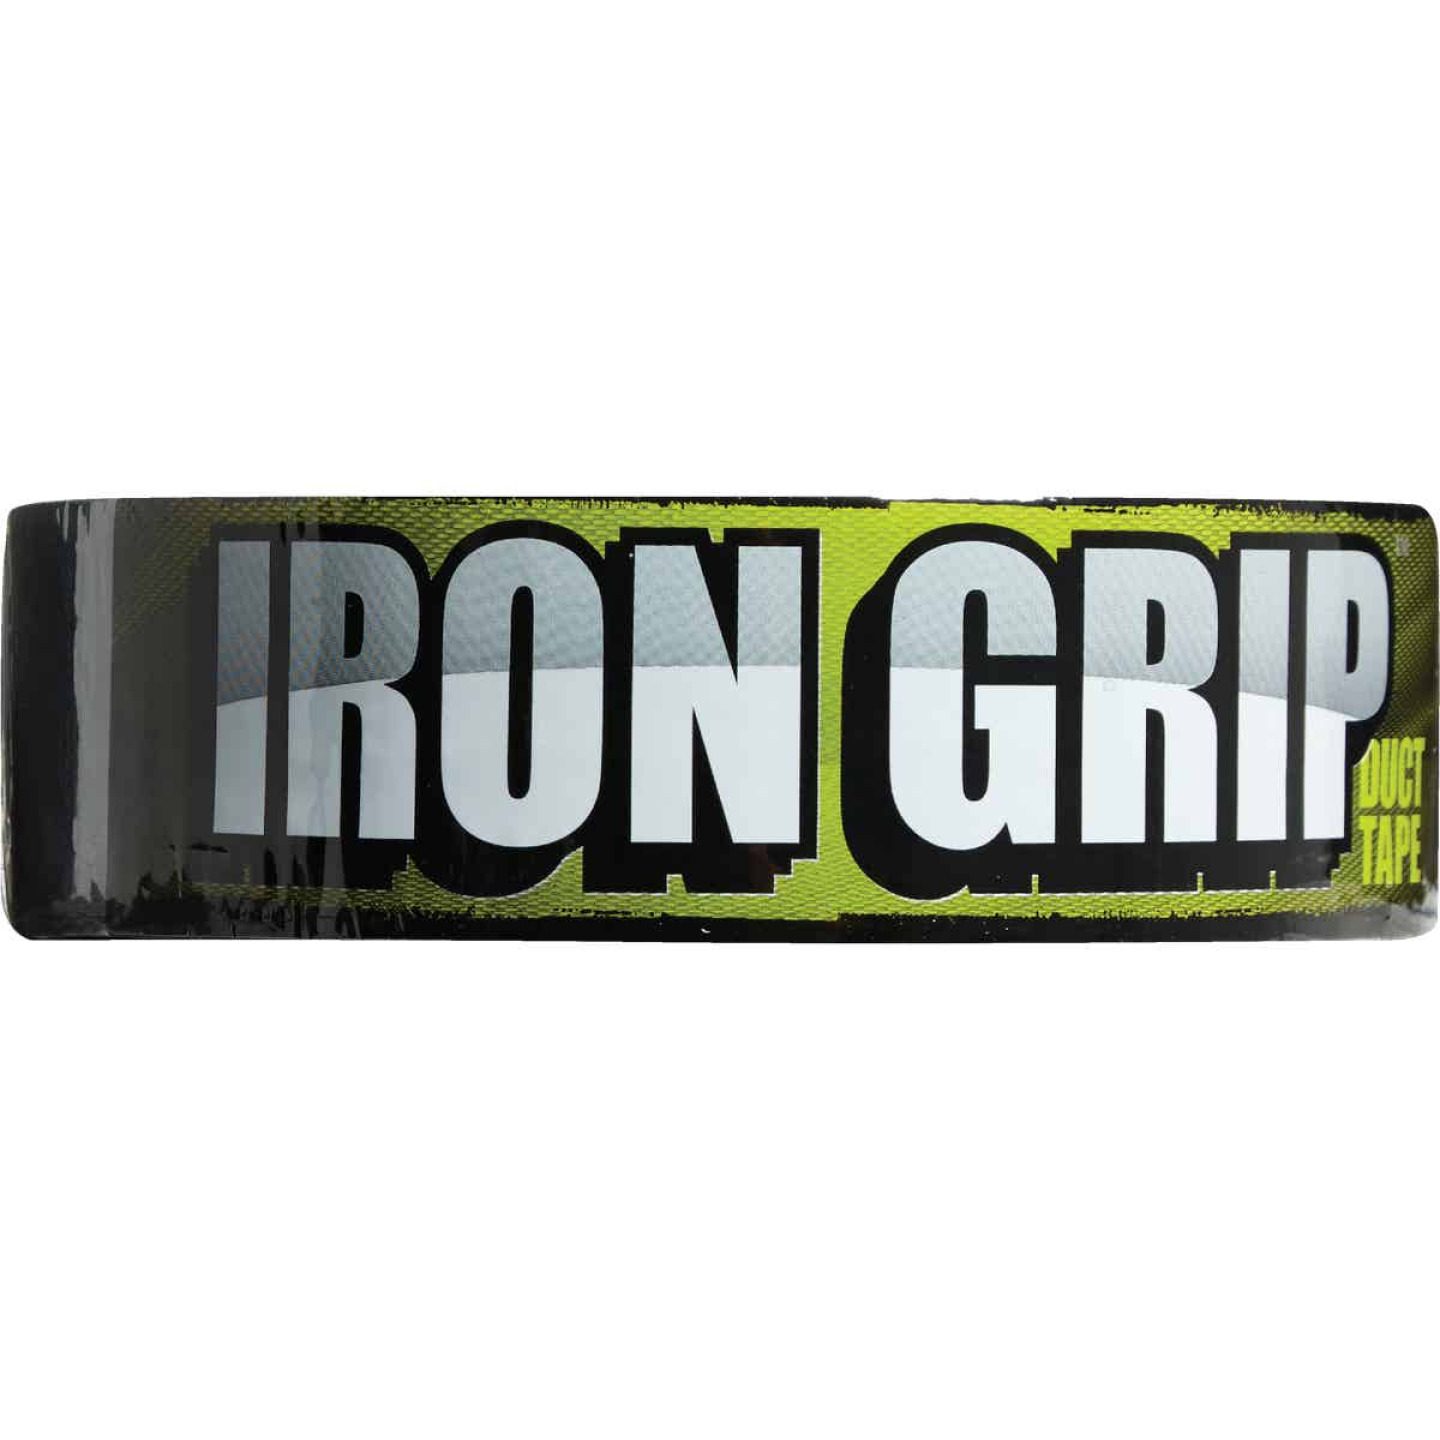 Intertape IRONGRIP 1.88 In. x 35 Yd. Duct Tape, Black Image 2